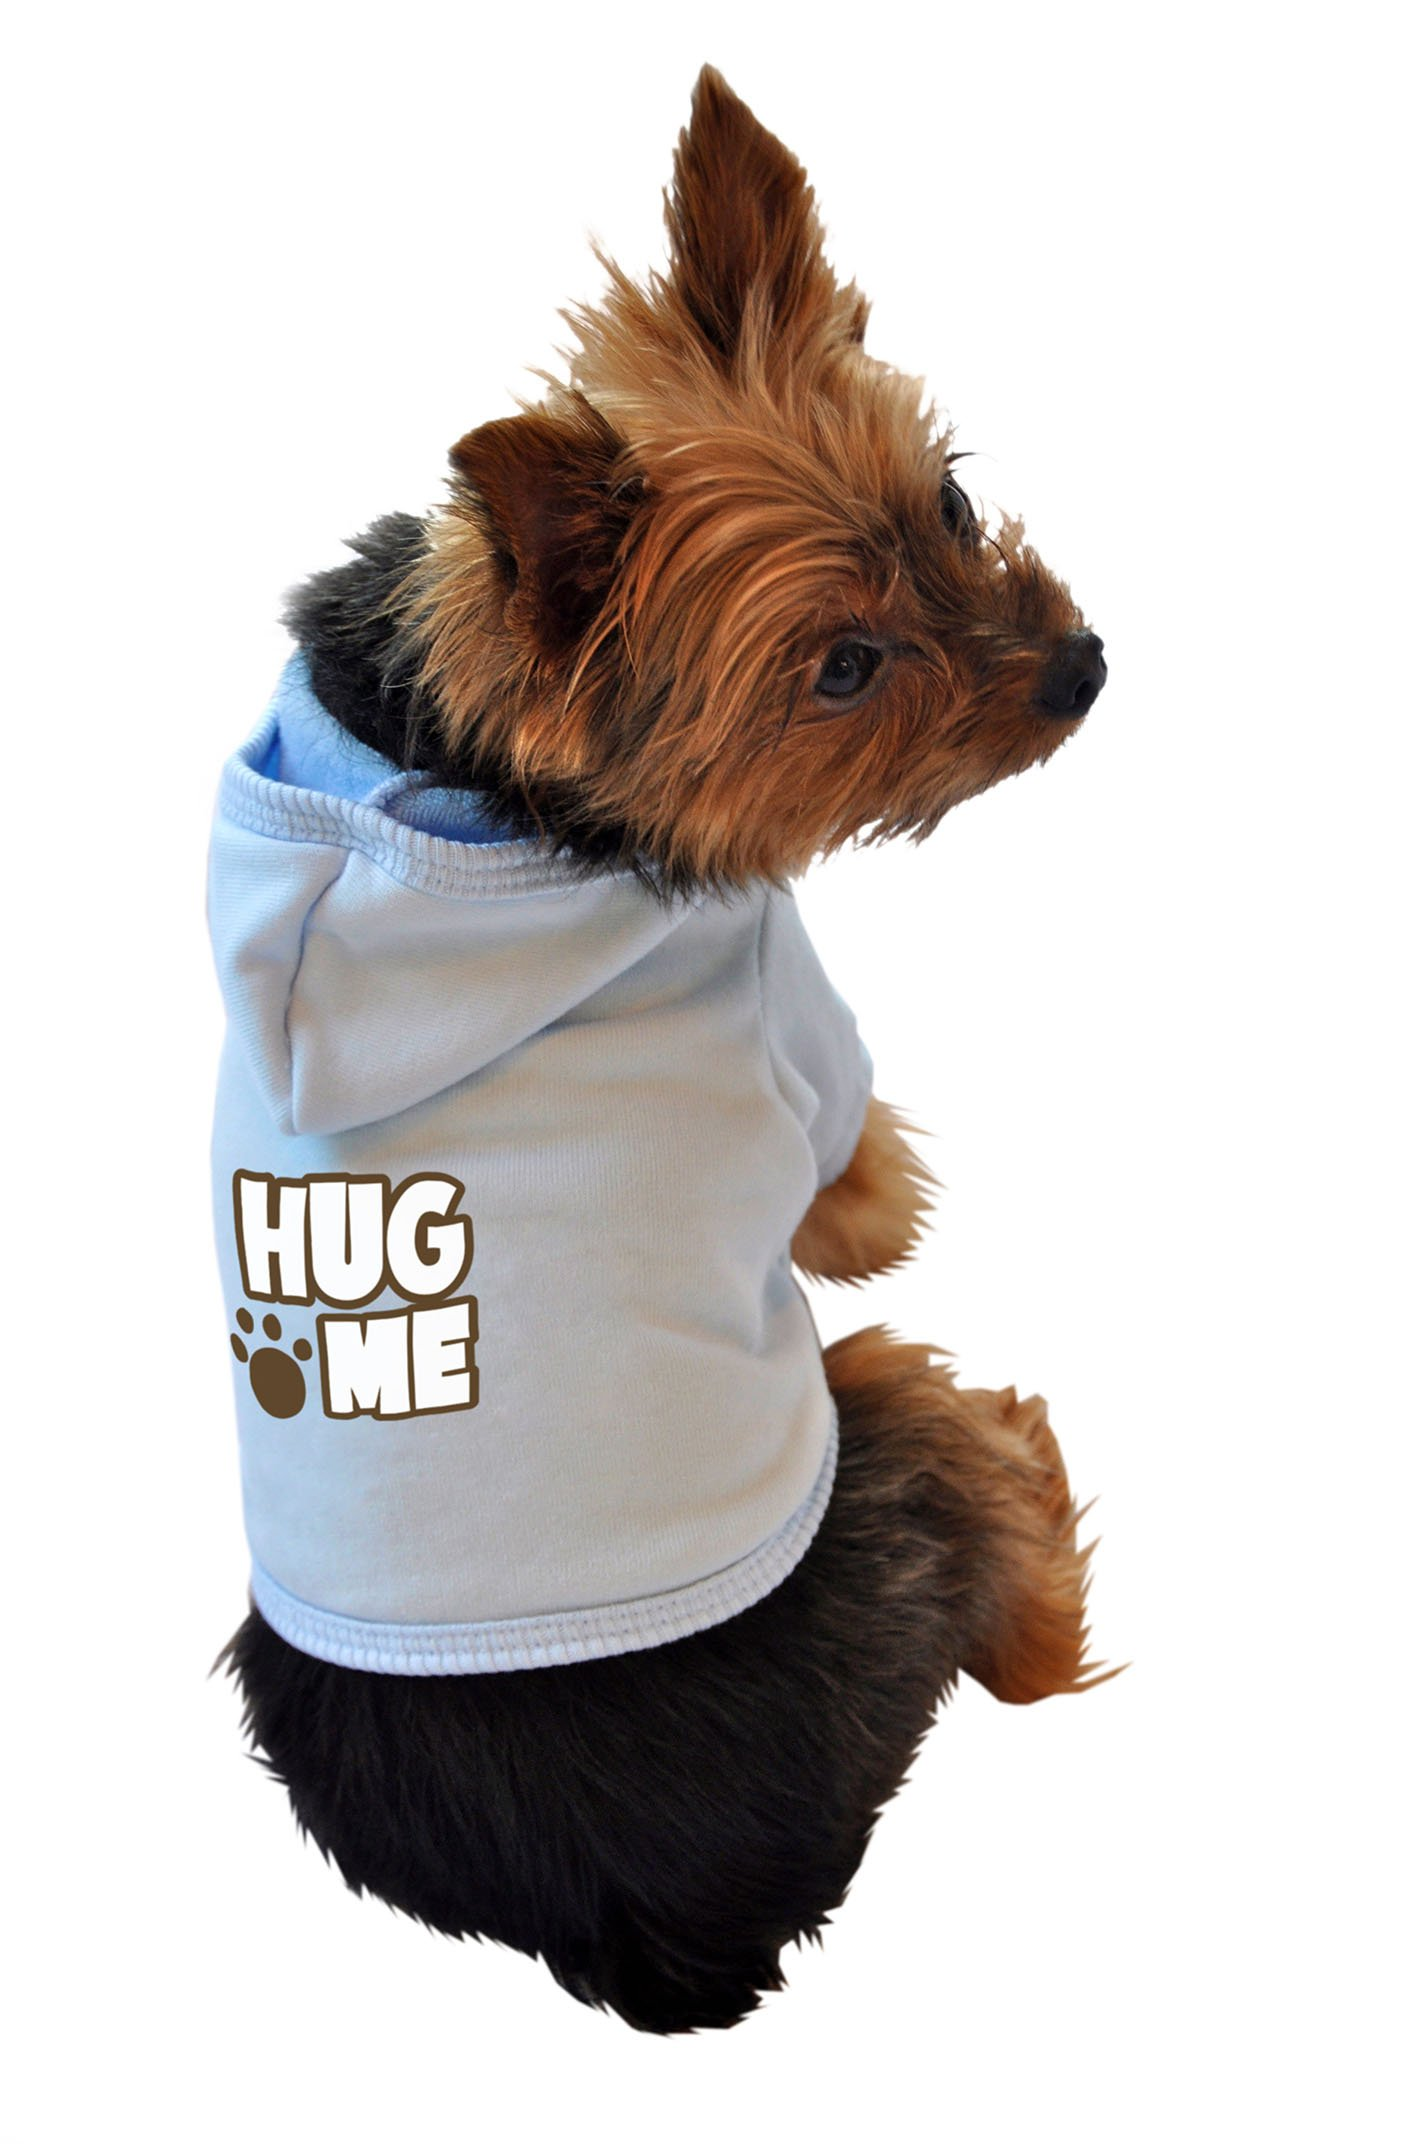 Ruff Ruff and Meow Dog Hoodie, Hug Me, Blue, Medium